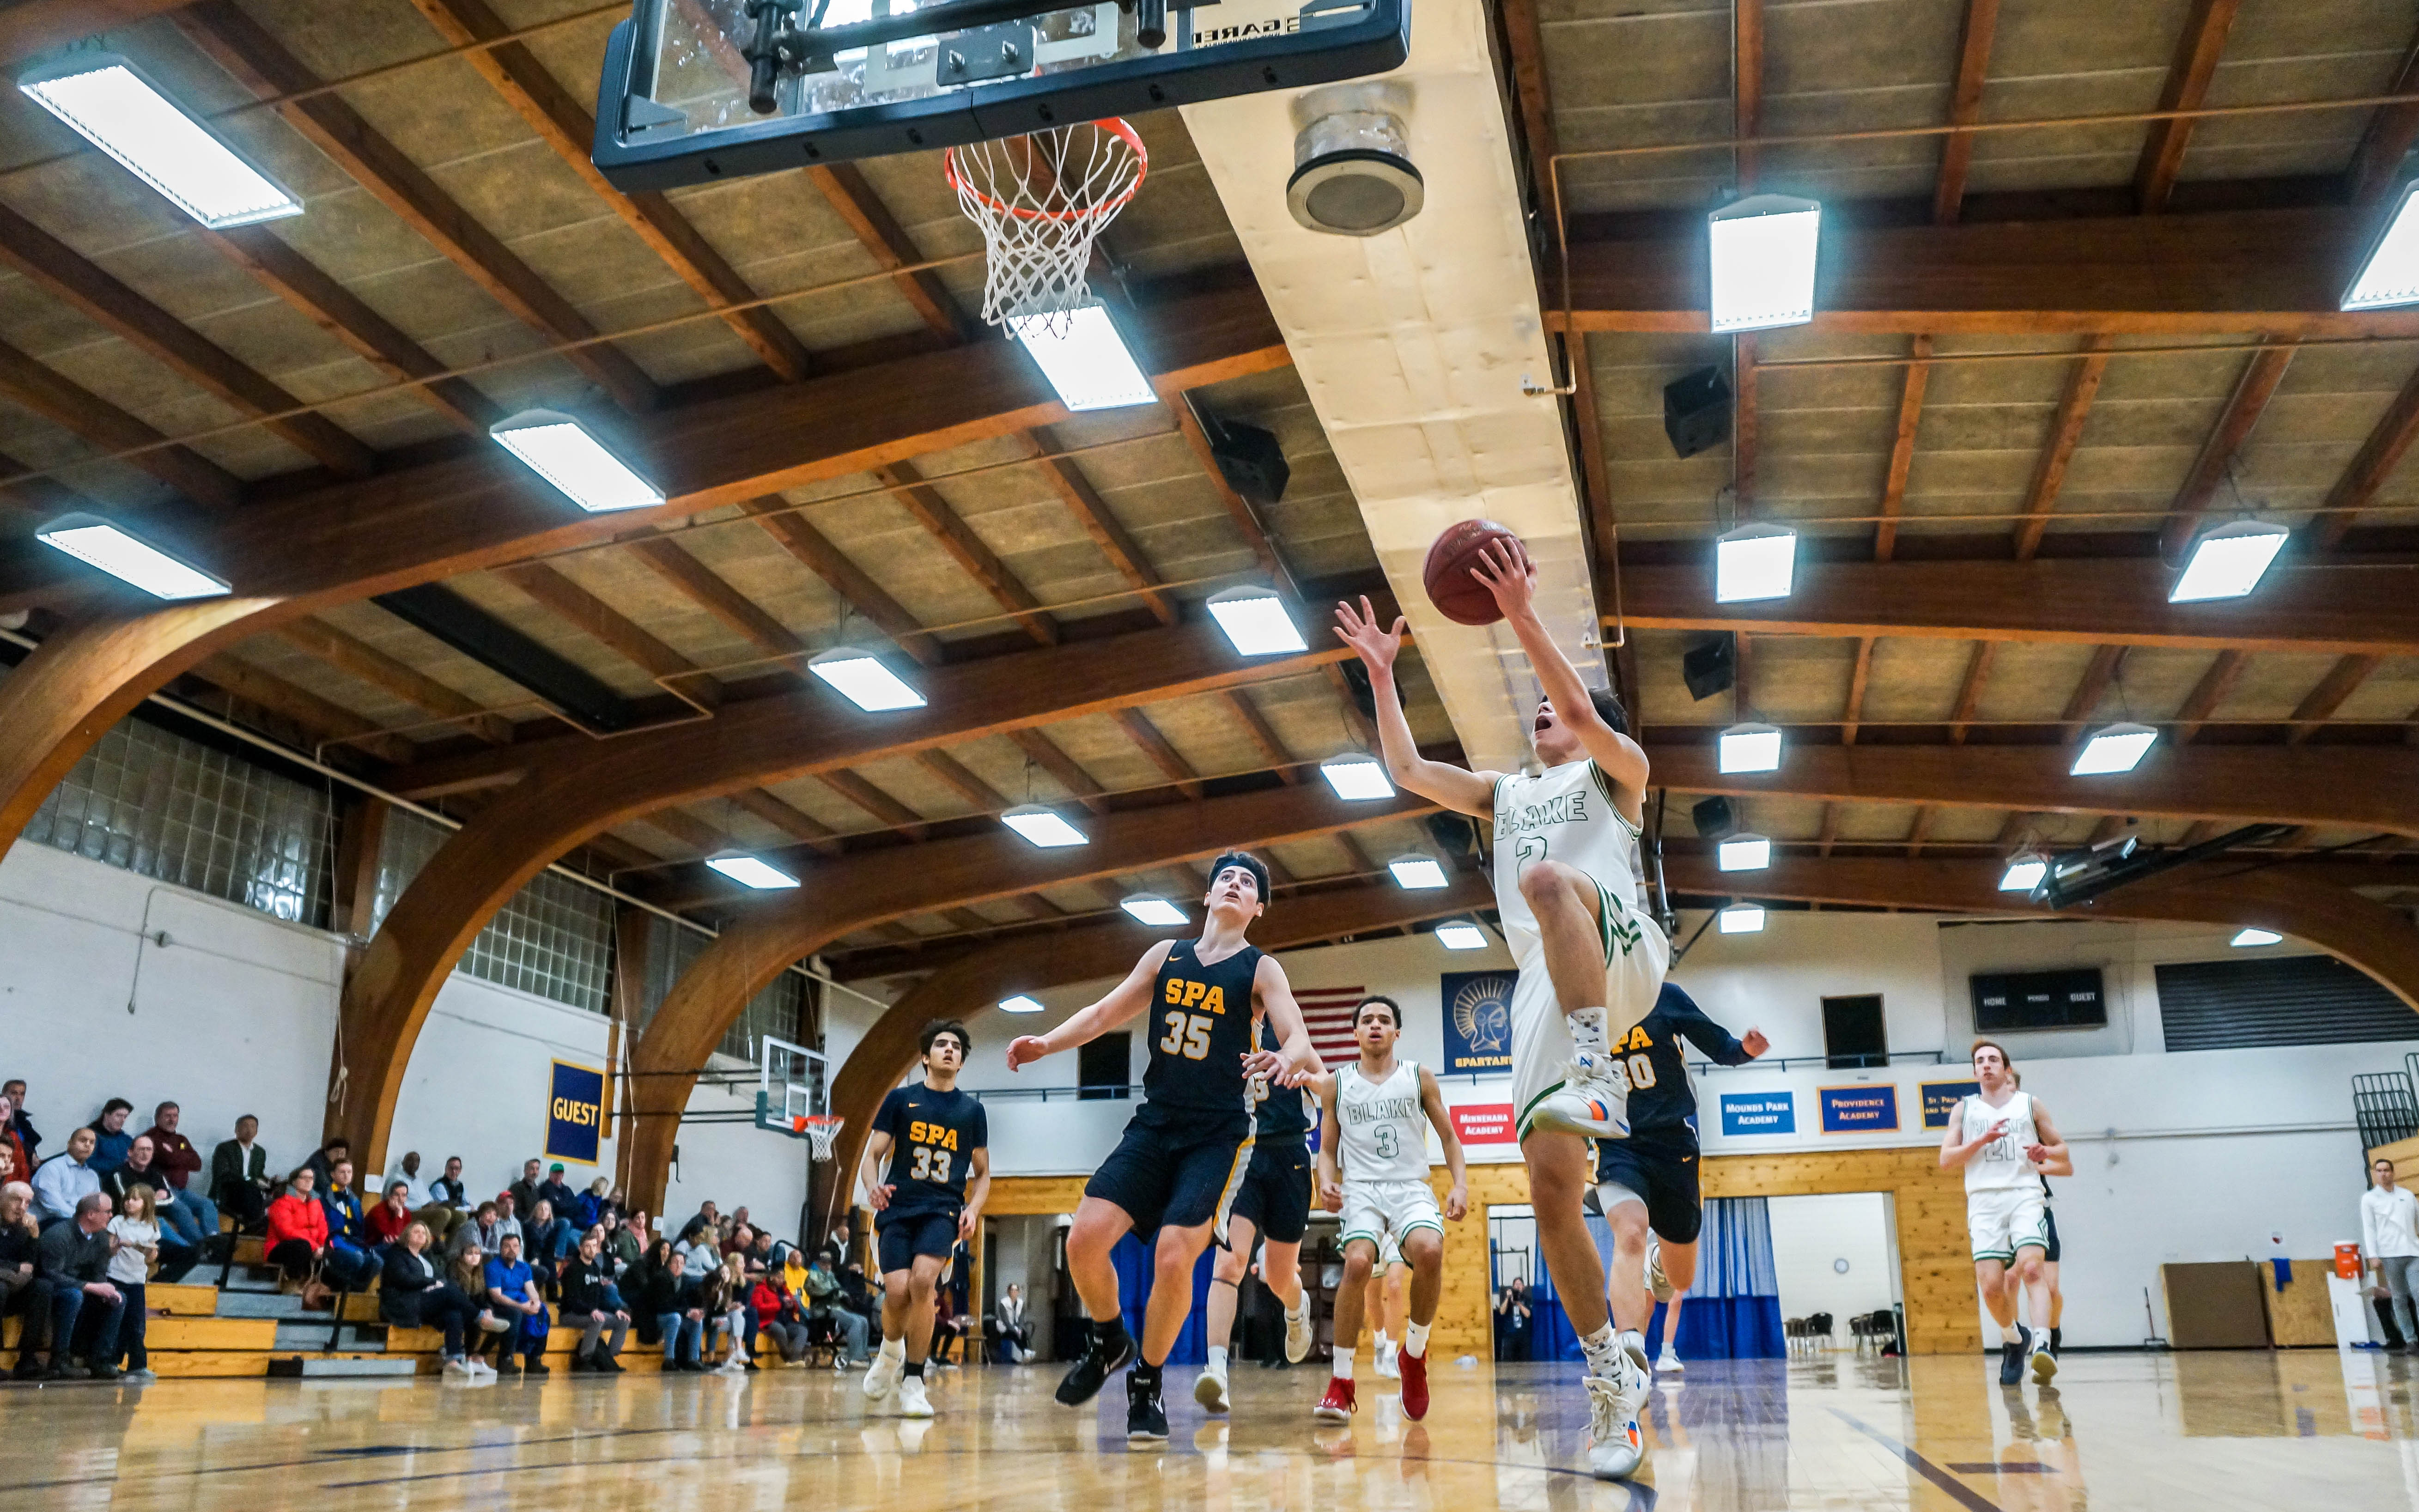 Blake's Jasper Liu with a layup on a fast break against St. Paul Academy Friday night. Liu finished with a game-high 26 points in the Bears' victory. Photo by Korey McDermott, SportsEngine